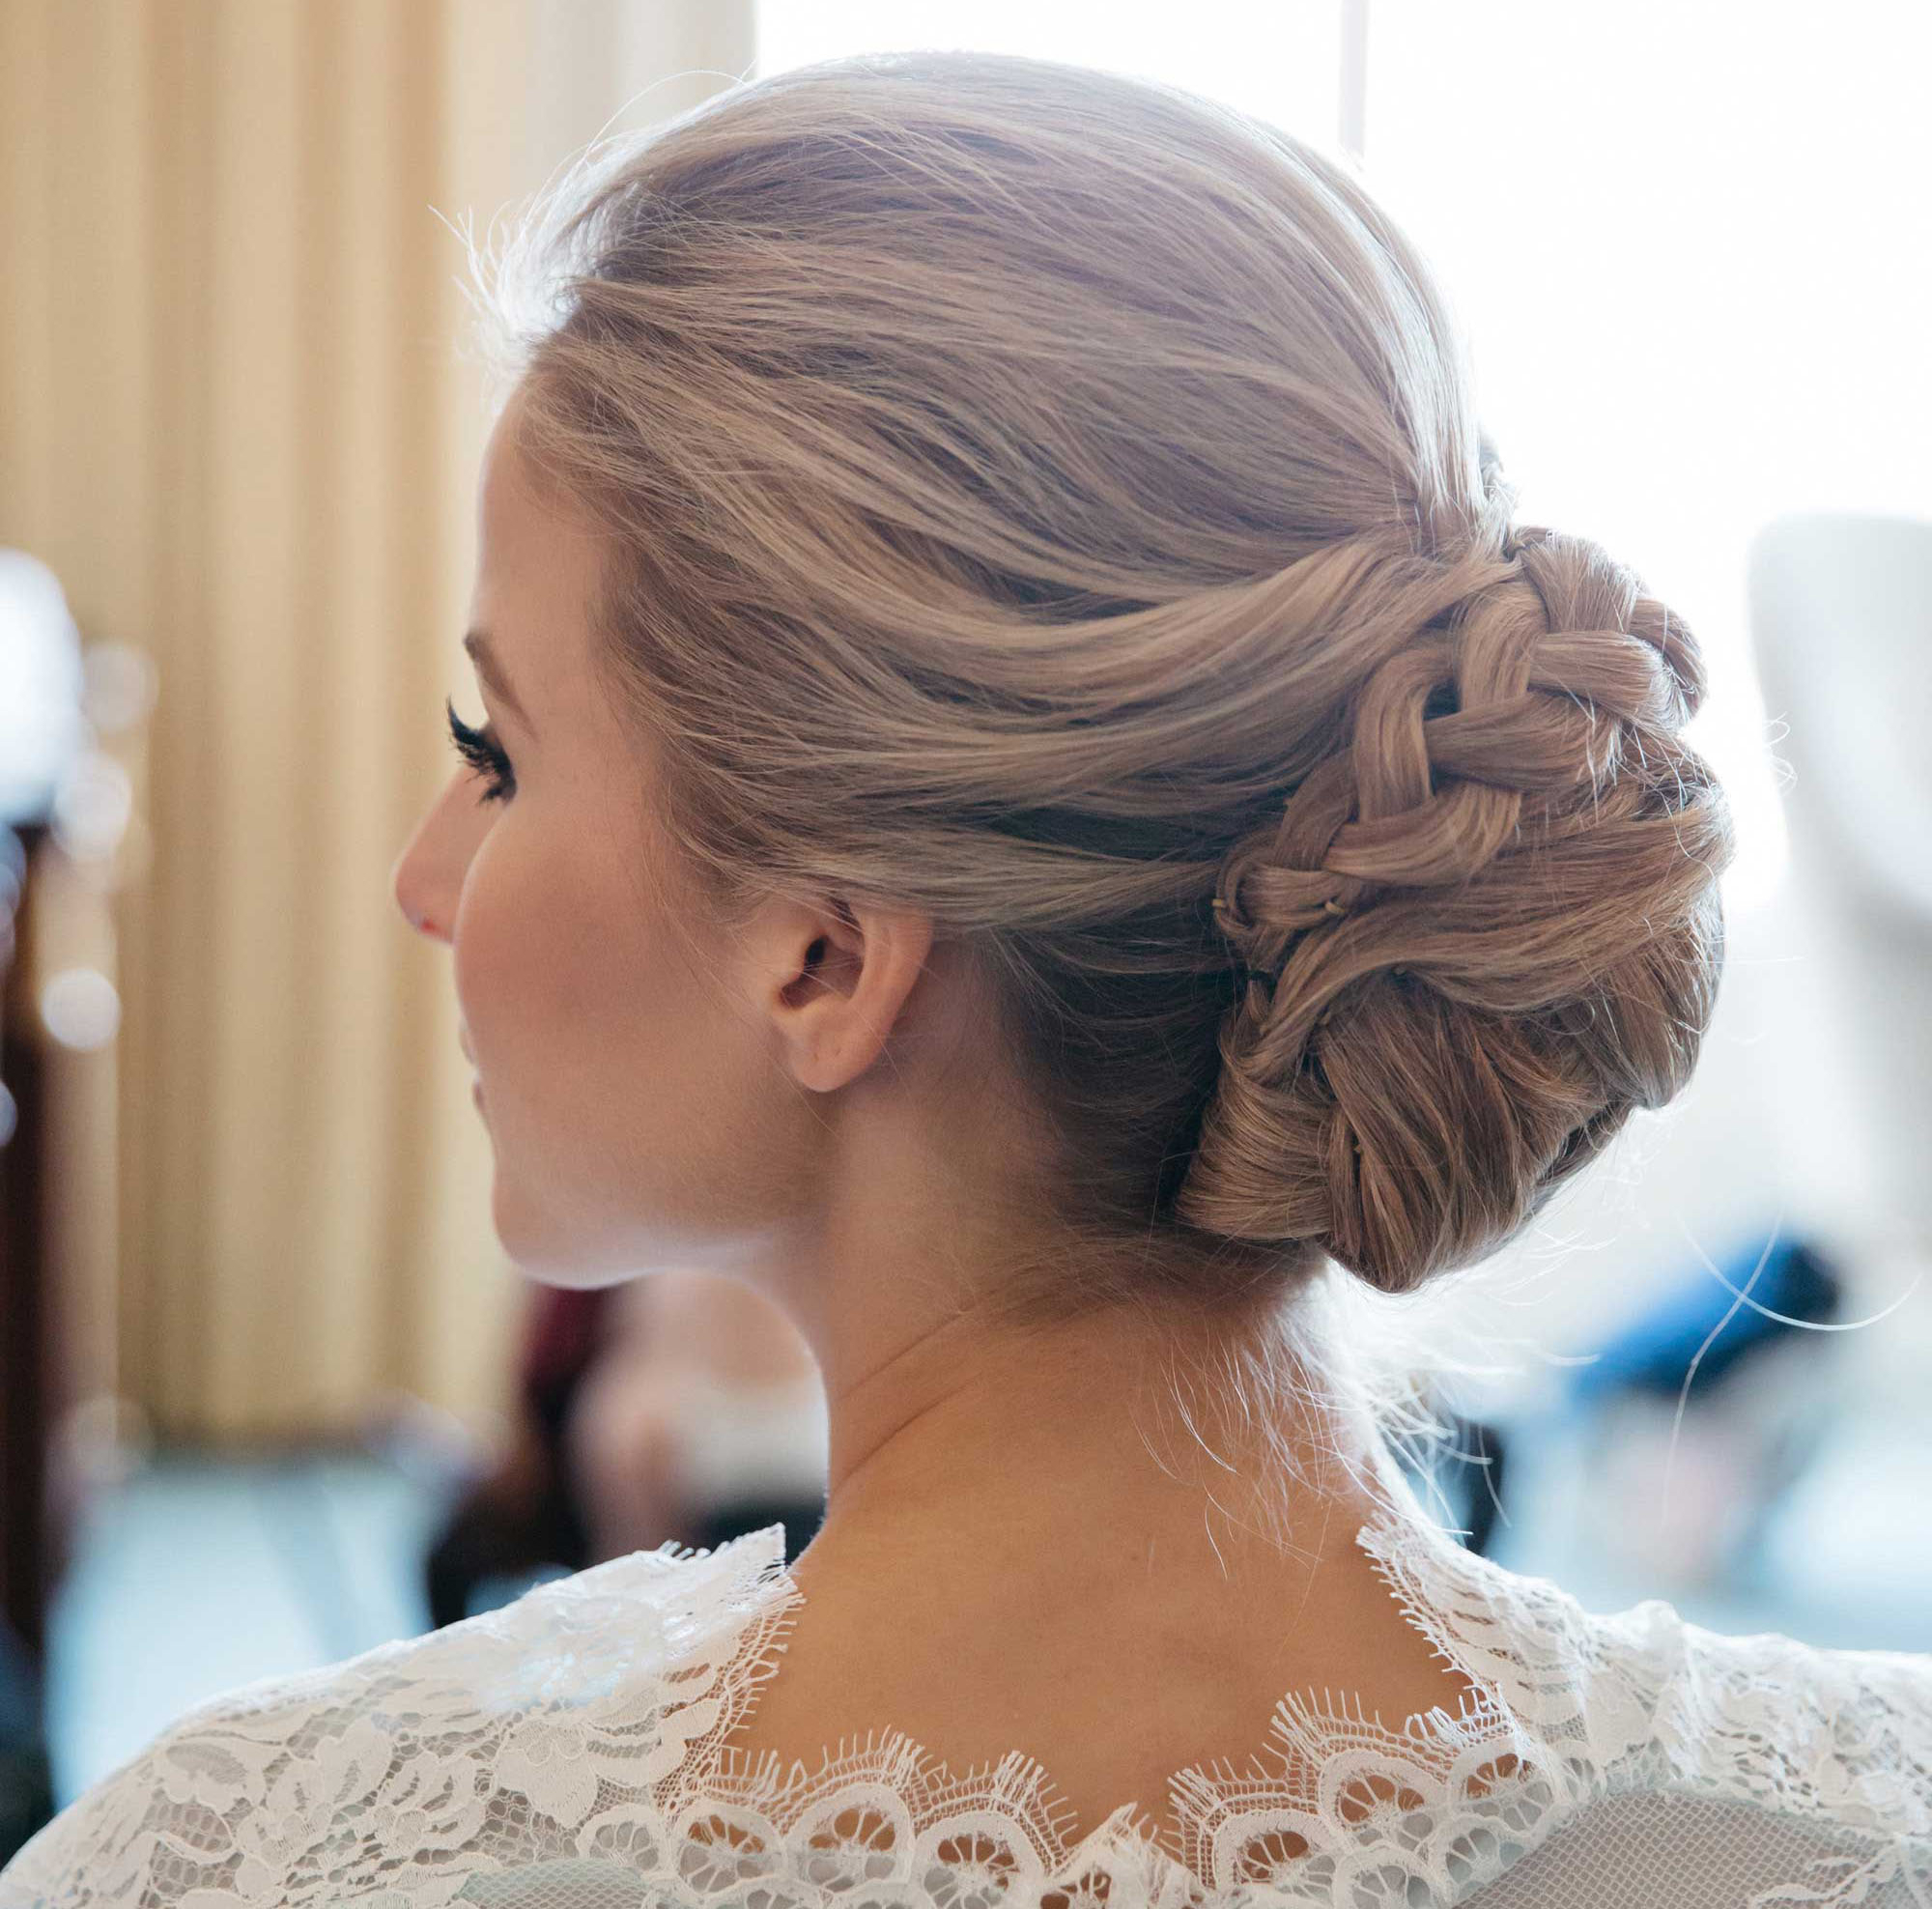 Popular Bridal Chignon Hairstyles With Headband And Veil Throughout Braided Hairstyles: 5 Ideas For Your Wedding Look – Inside Weddings (View 14 of 20)